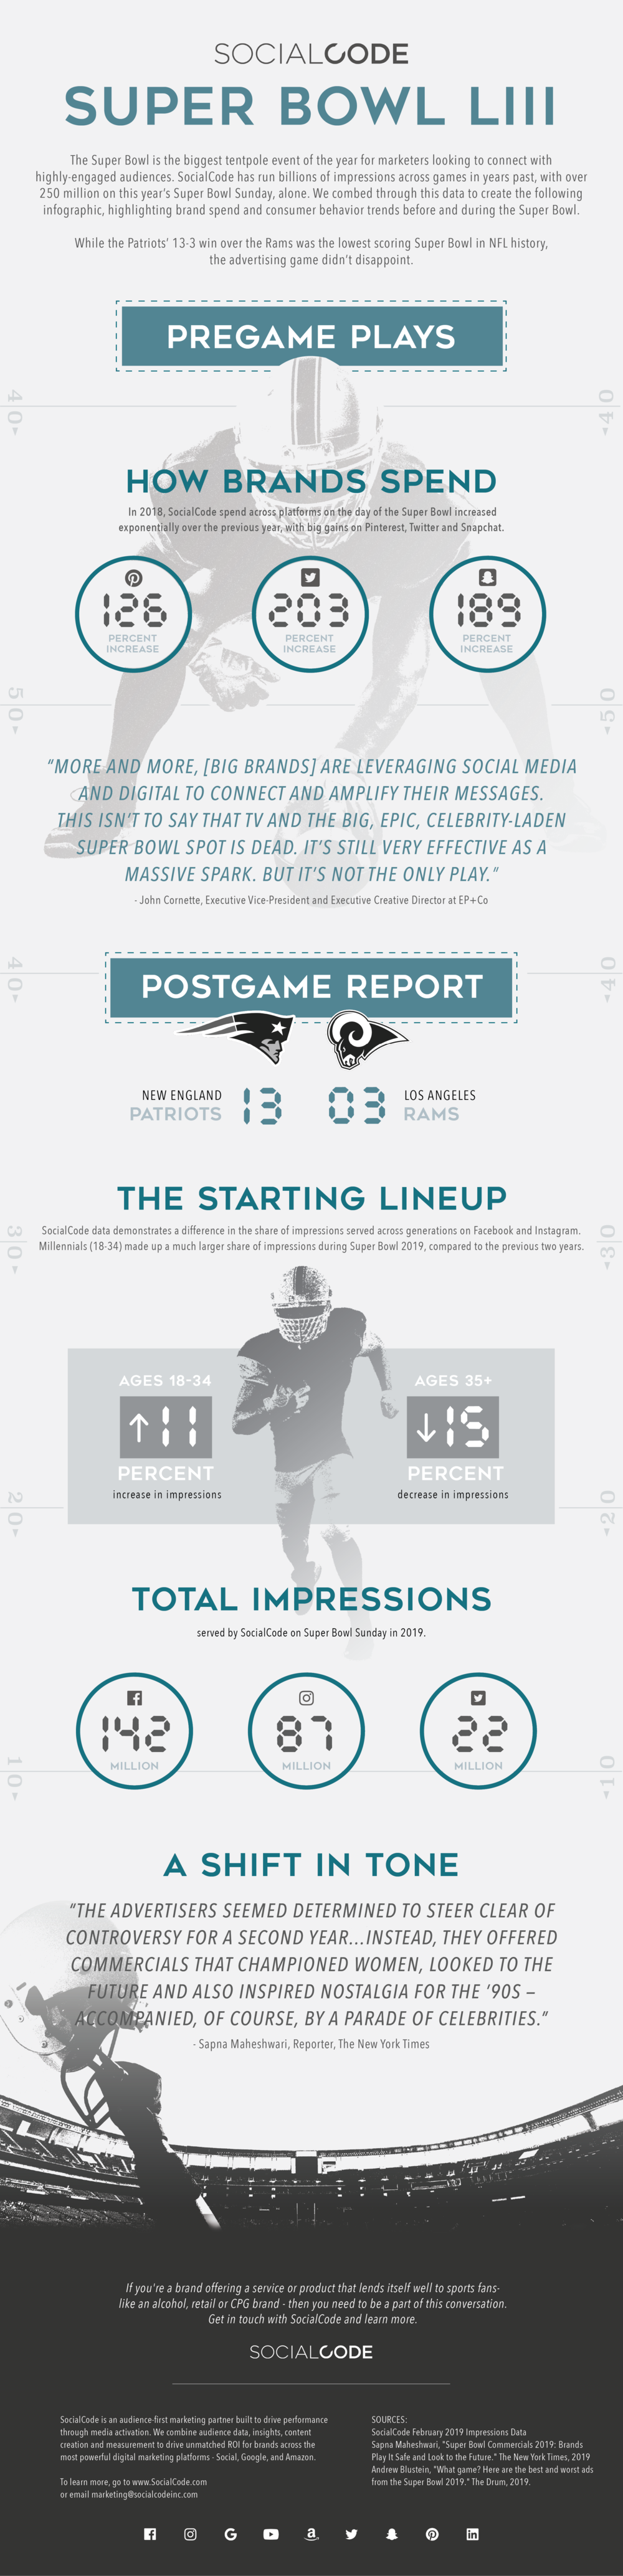 2019SuperBowl-Infographic.png